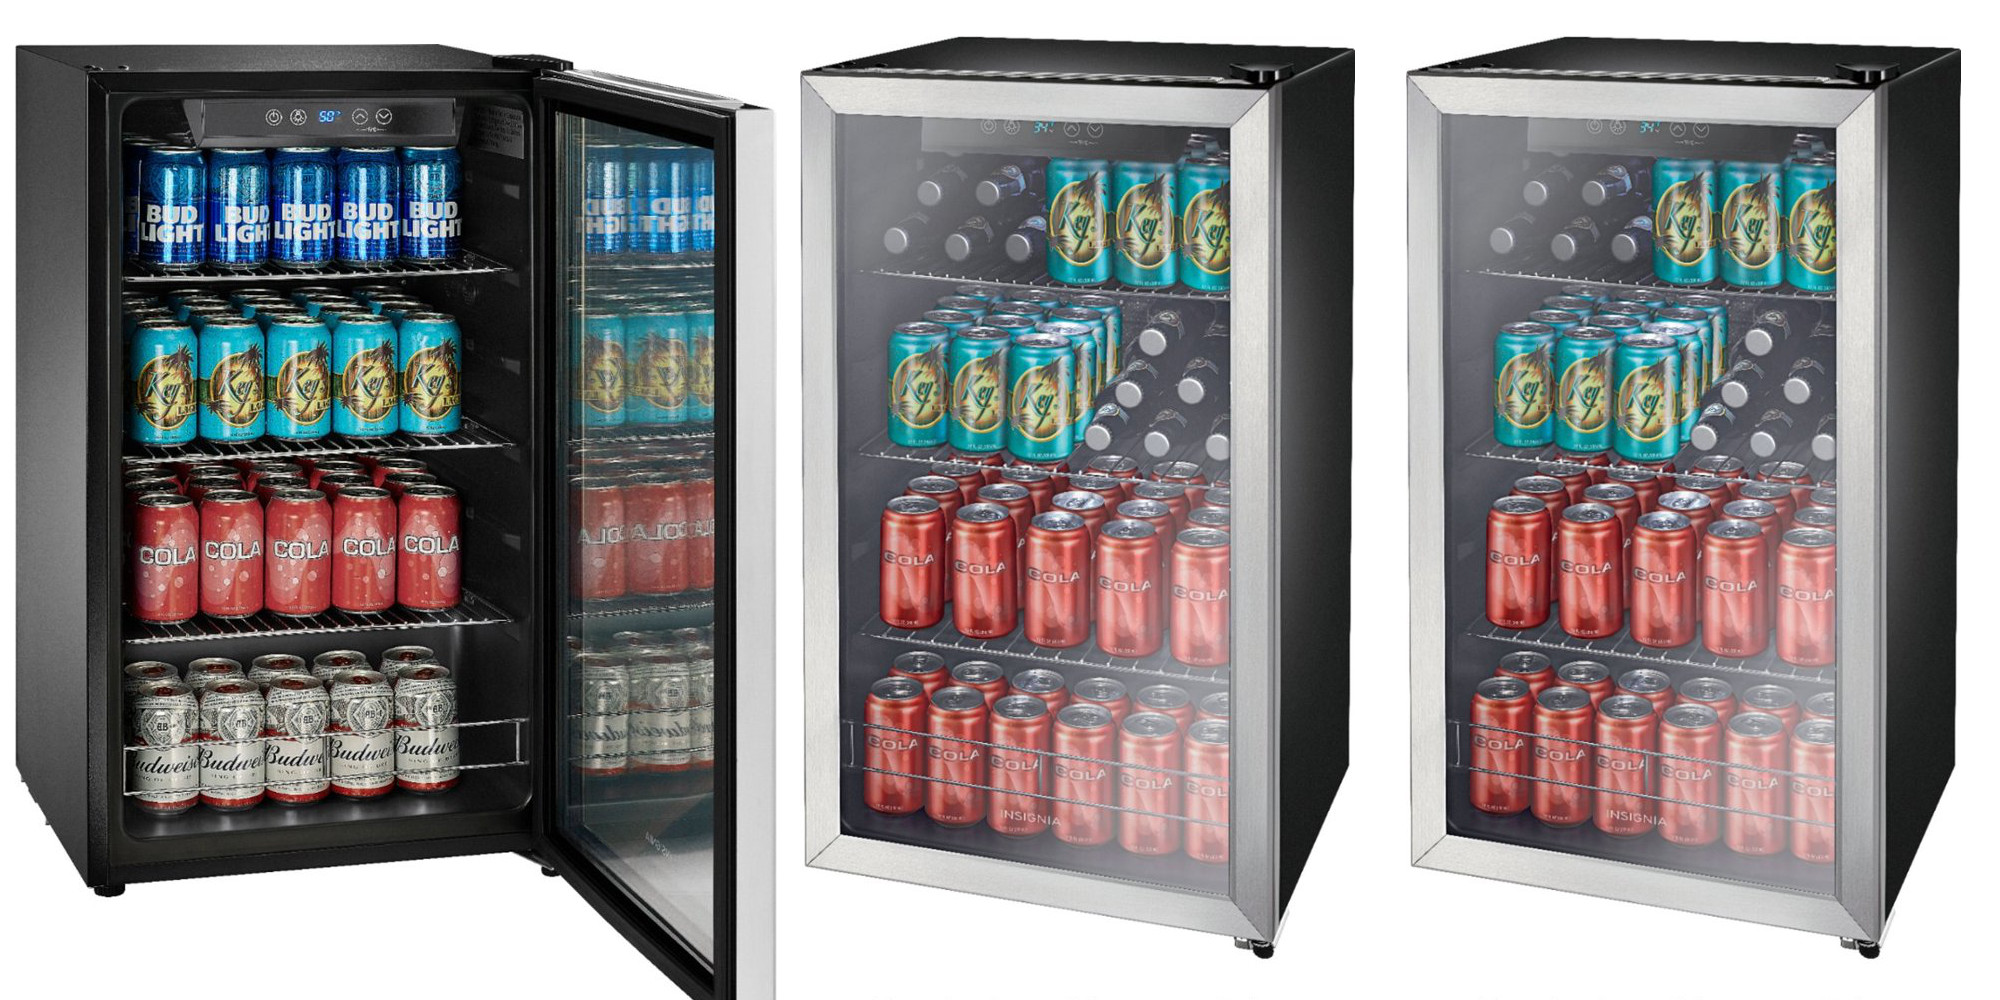 Keep the beer cold this summer, Insignia's 115-Can Mini Fridge is $100 off: $180 shipped